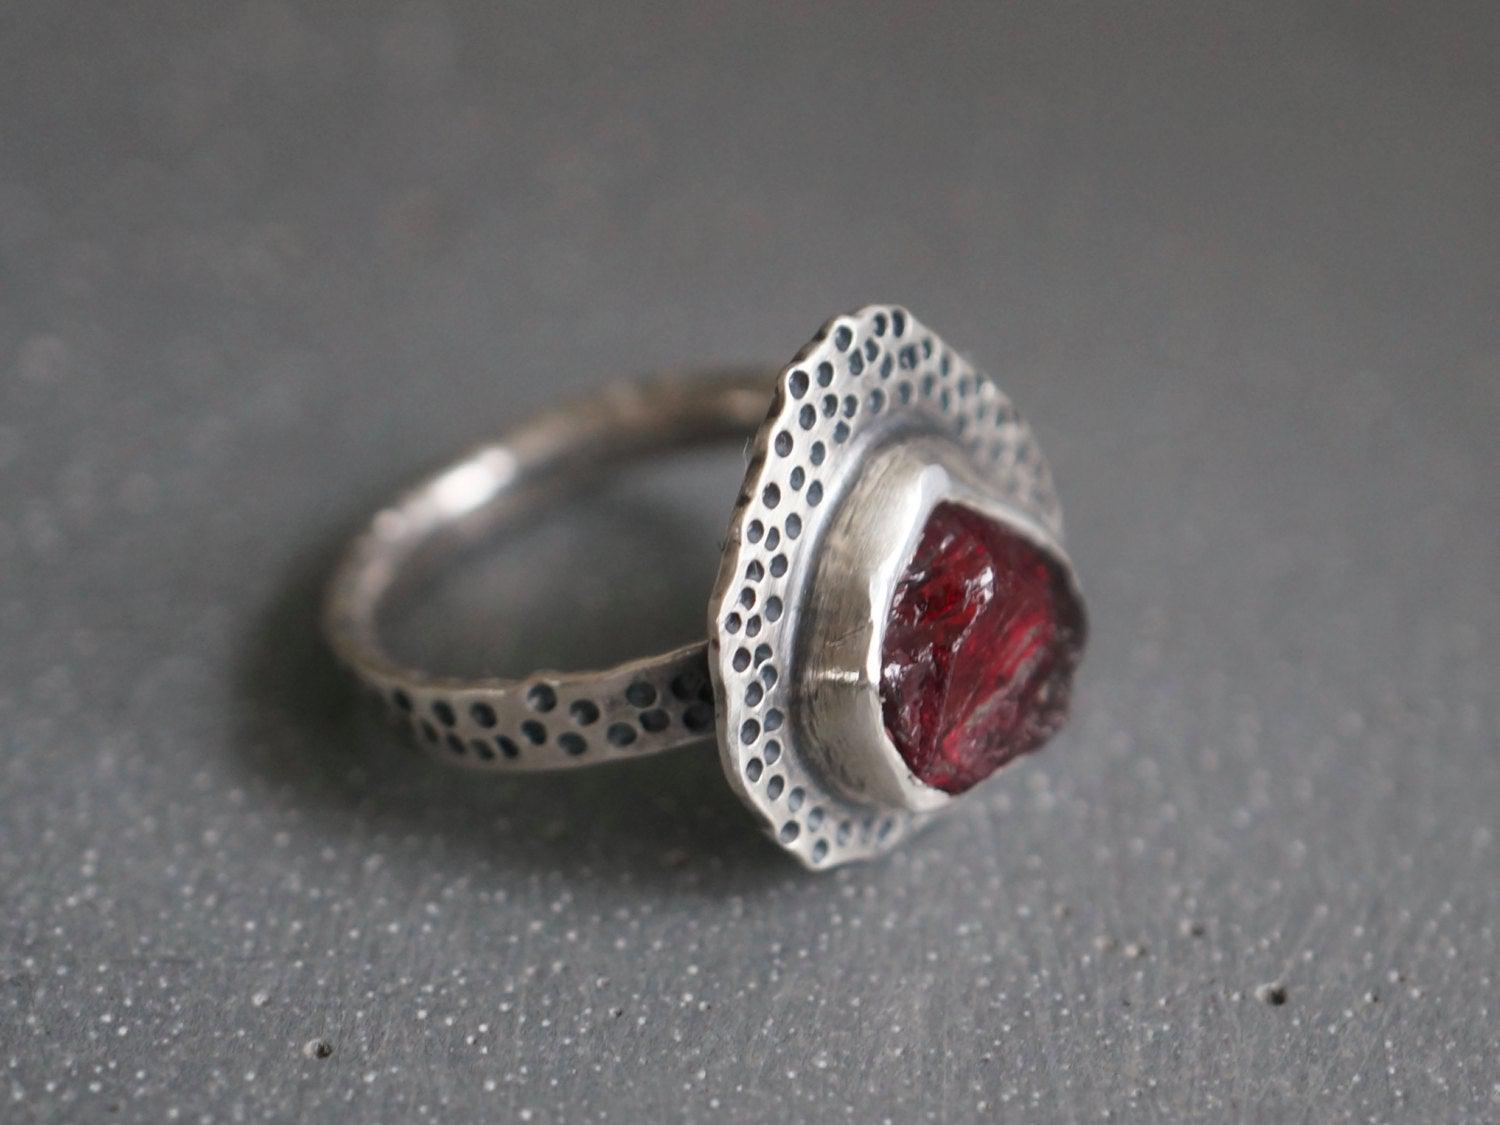 Raw garnet and sterling silver ring, size 7